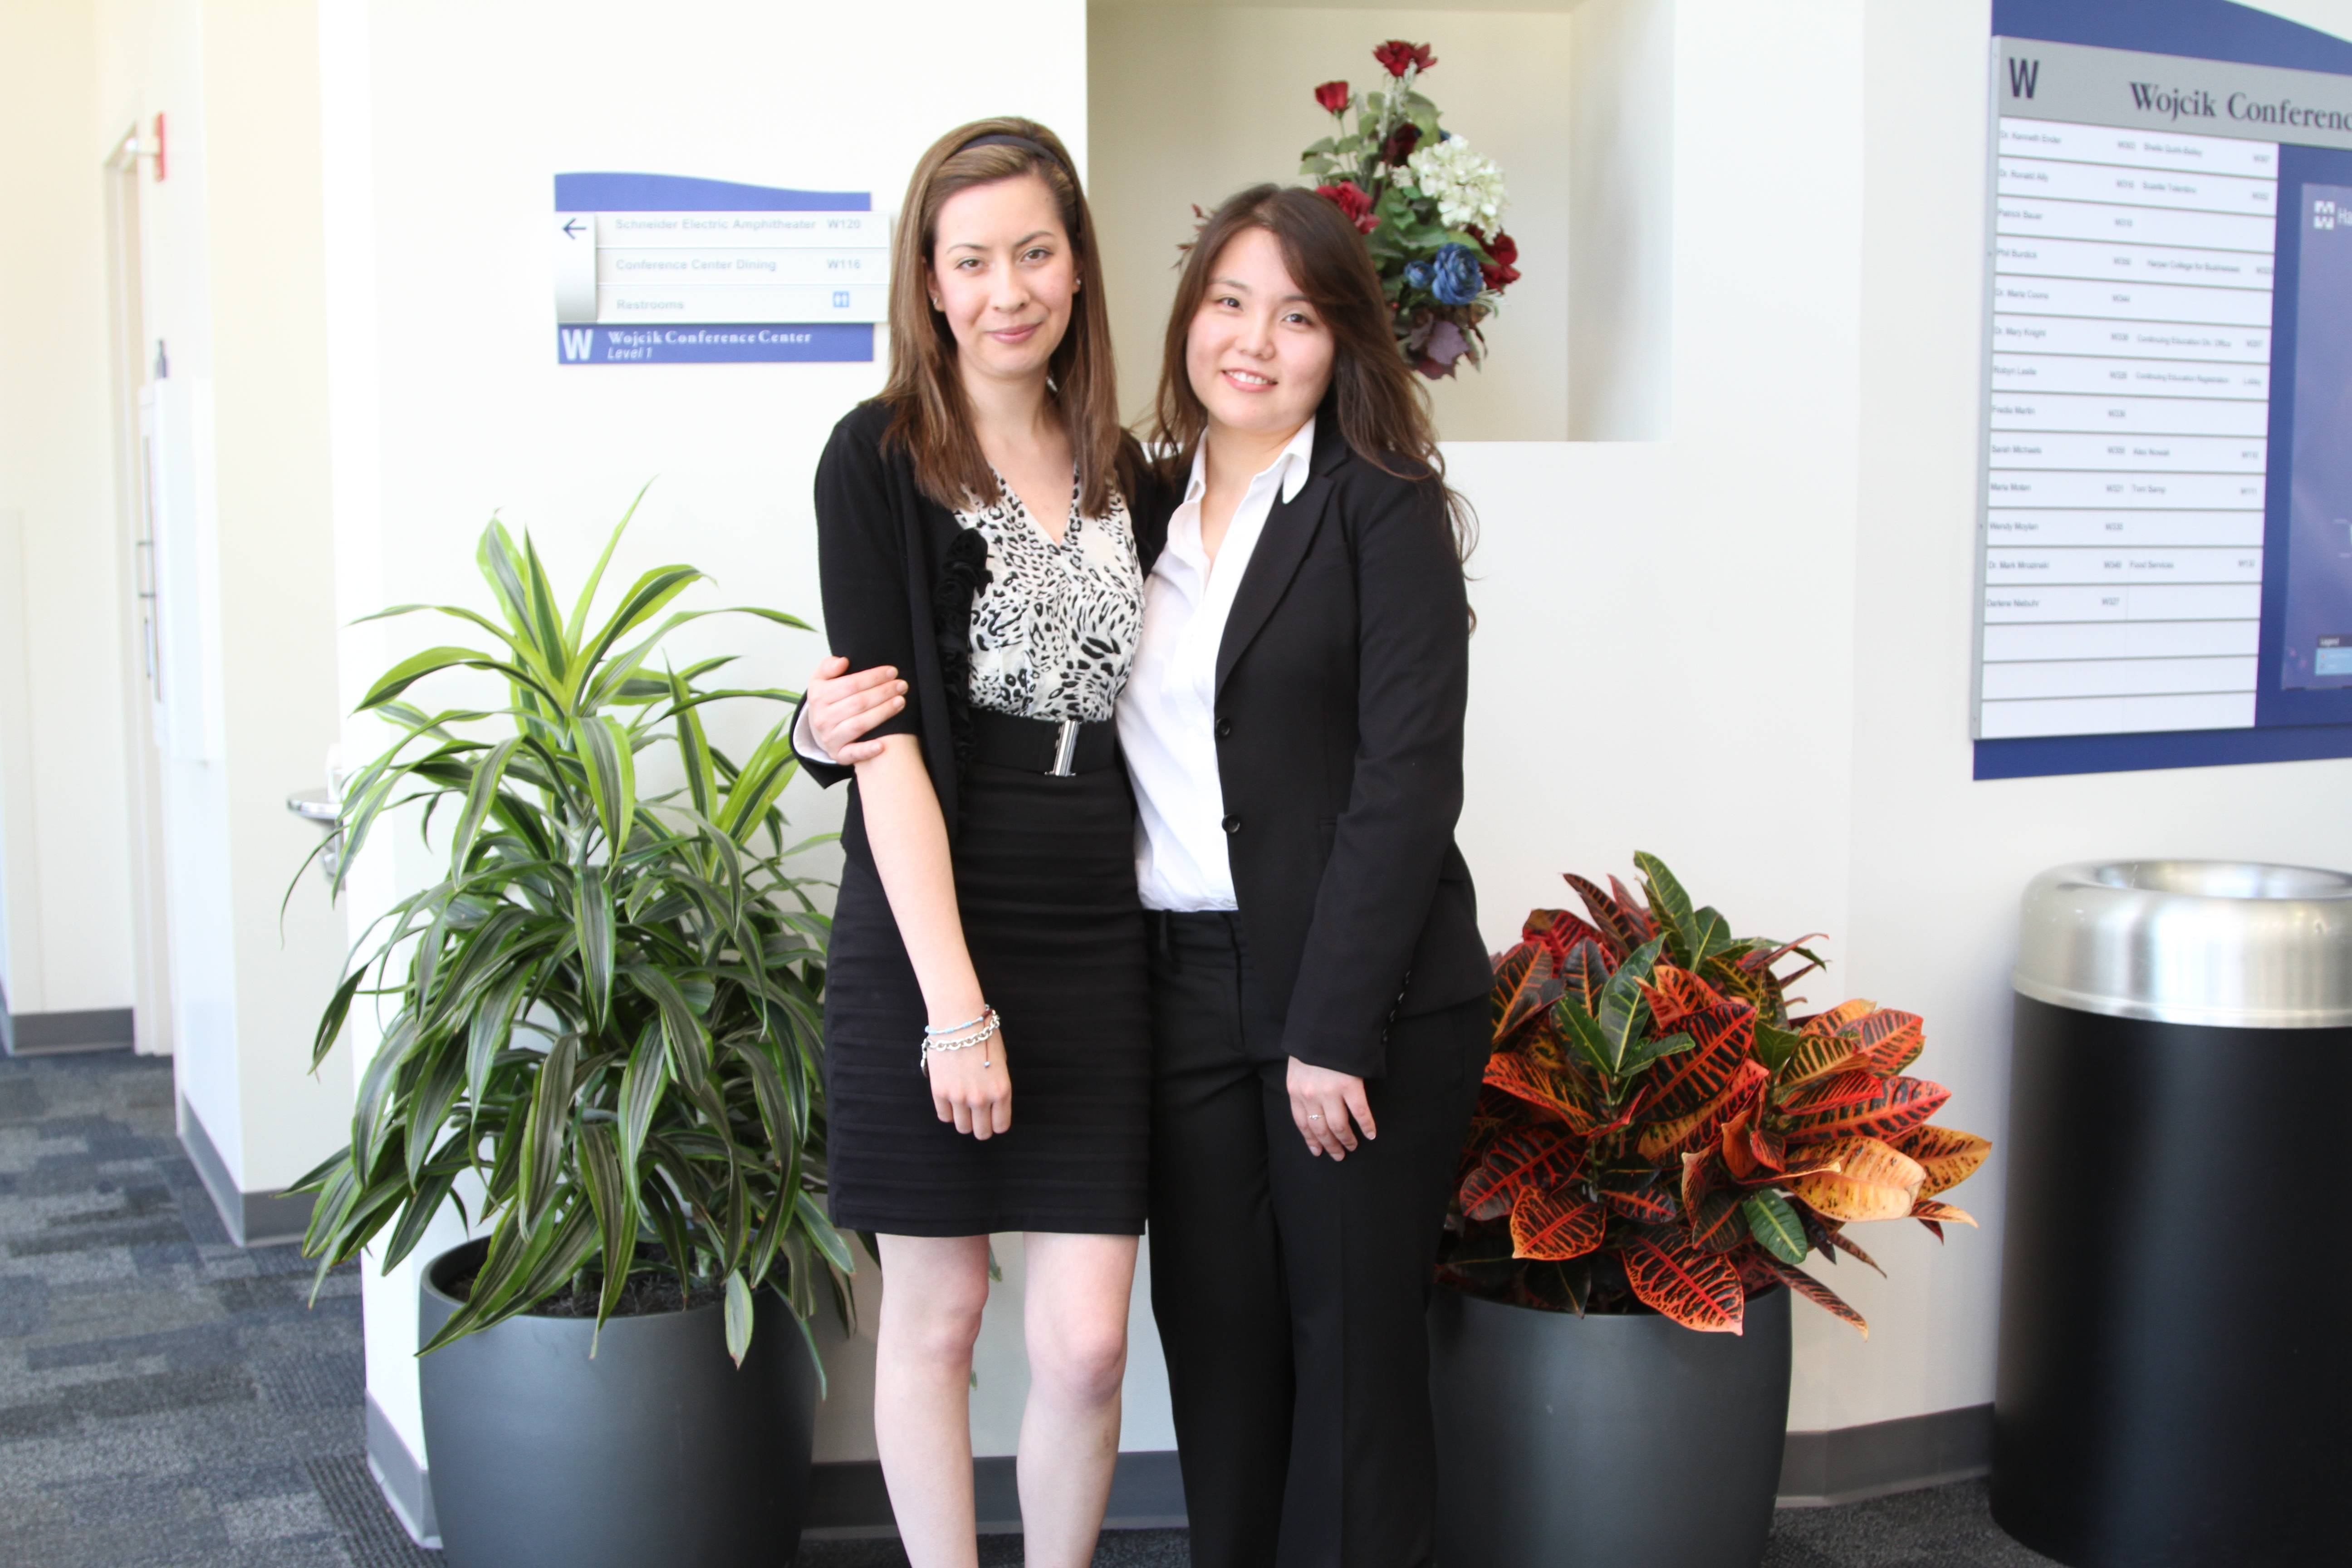 Michelle Kreutner (left) and Myra Chung are the recent recipients of a scholarship from Fashion Group International, the nonprofit organization for the fashion, apparel, beauty and home industries. Both students plan to use the scholarship to further develop their designs.